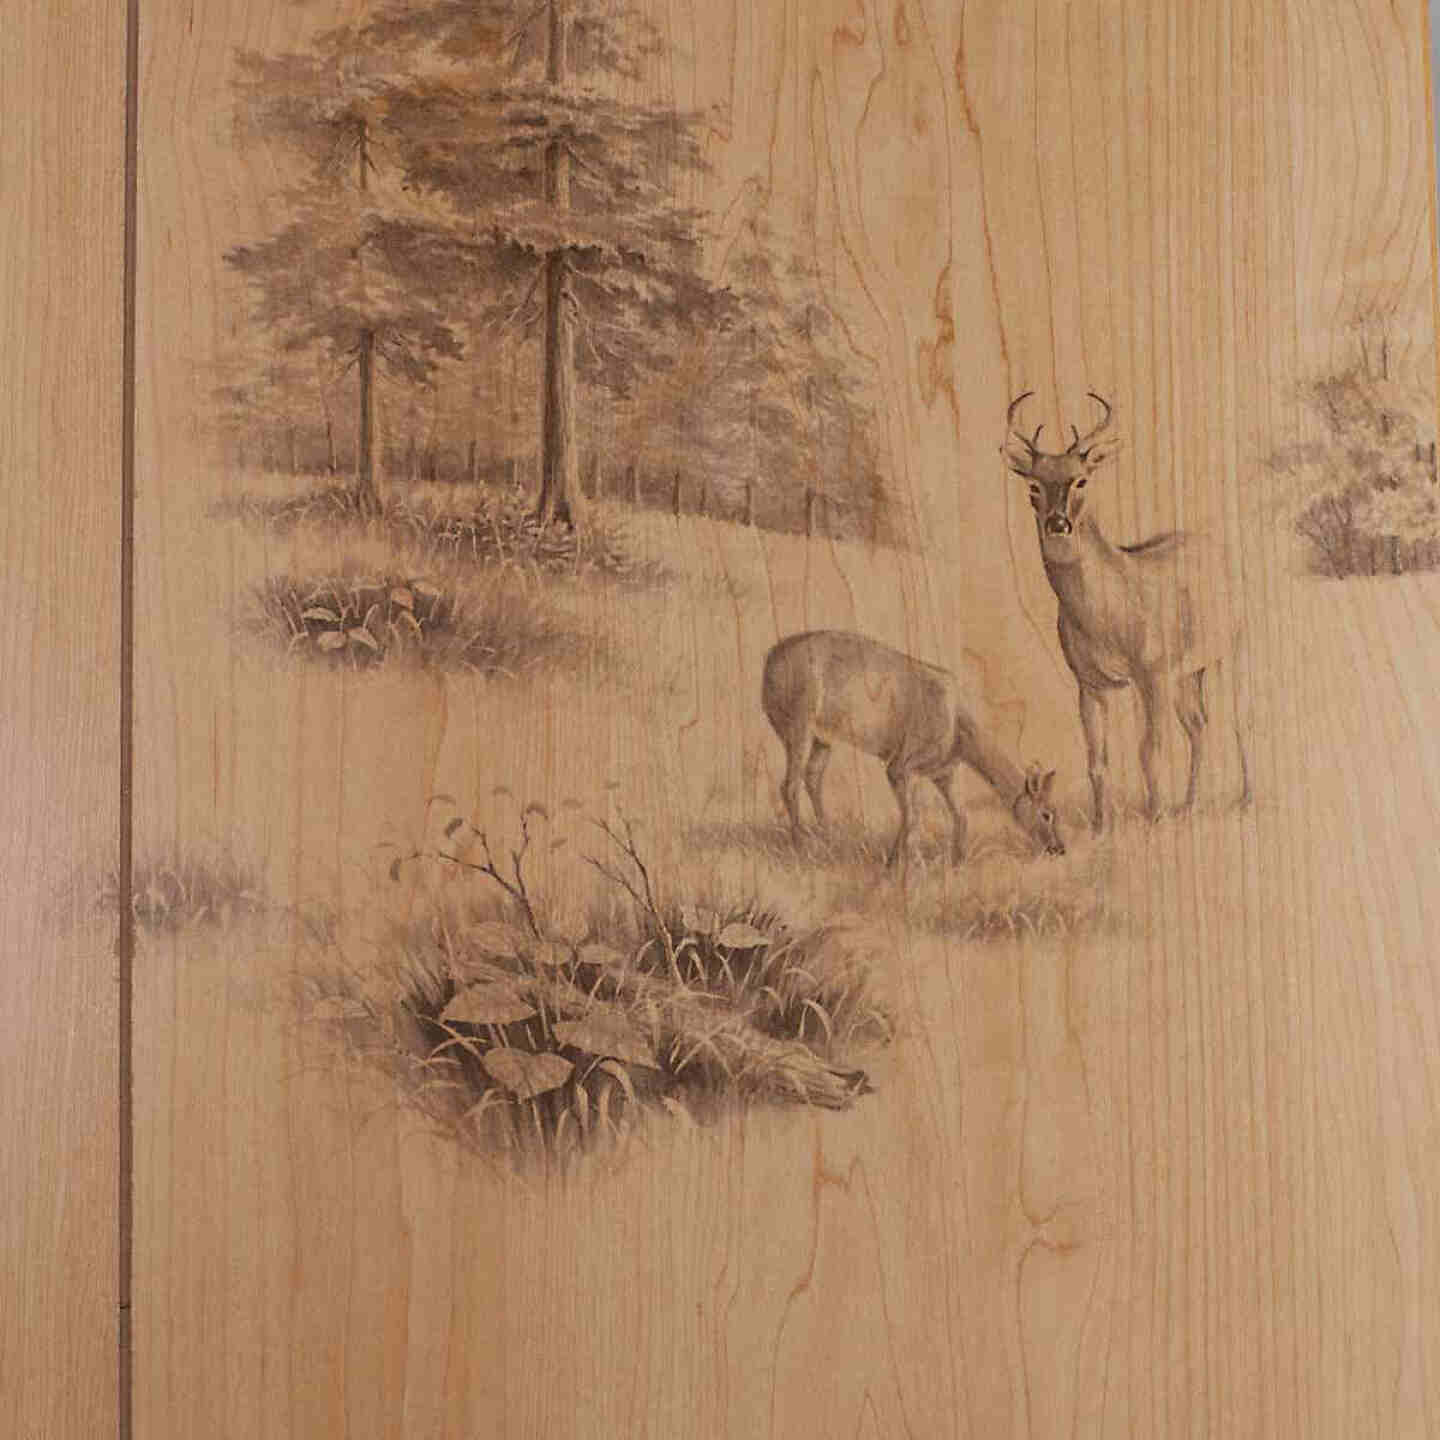 Global Product Sourcing 4 Ft. x 8 Ft. x 1/8 In. Woodsman Random Groove Profile Wall Paneling Image 1